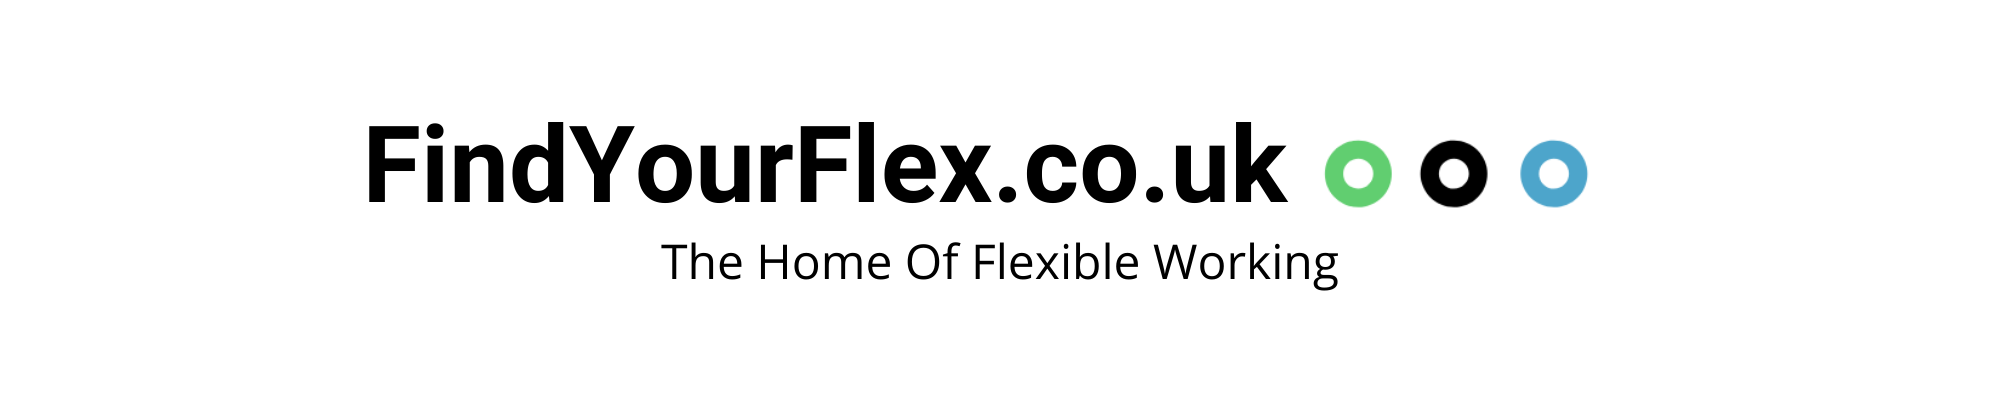 The Home Of Flexible Working, Find Your Flex Logo